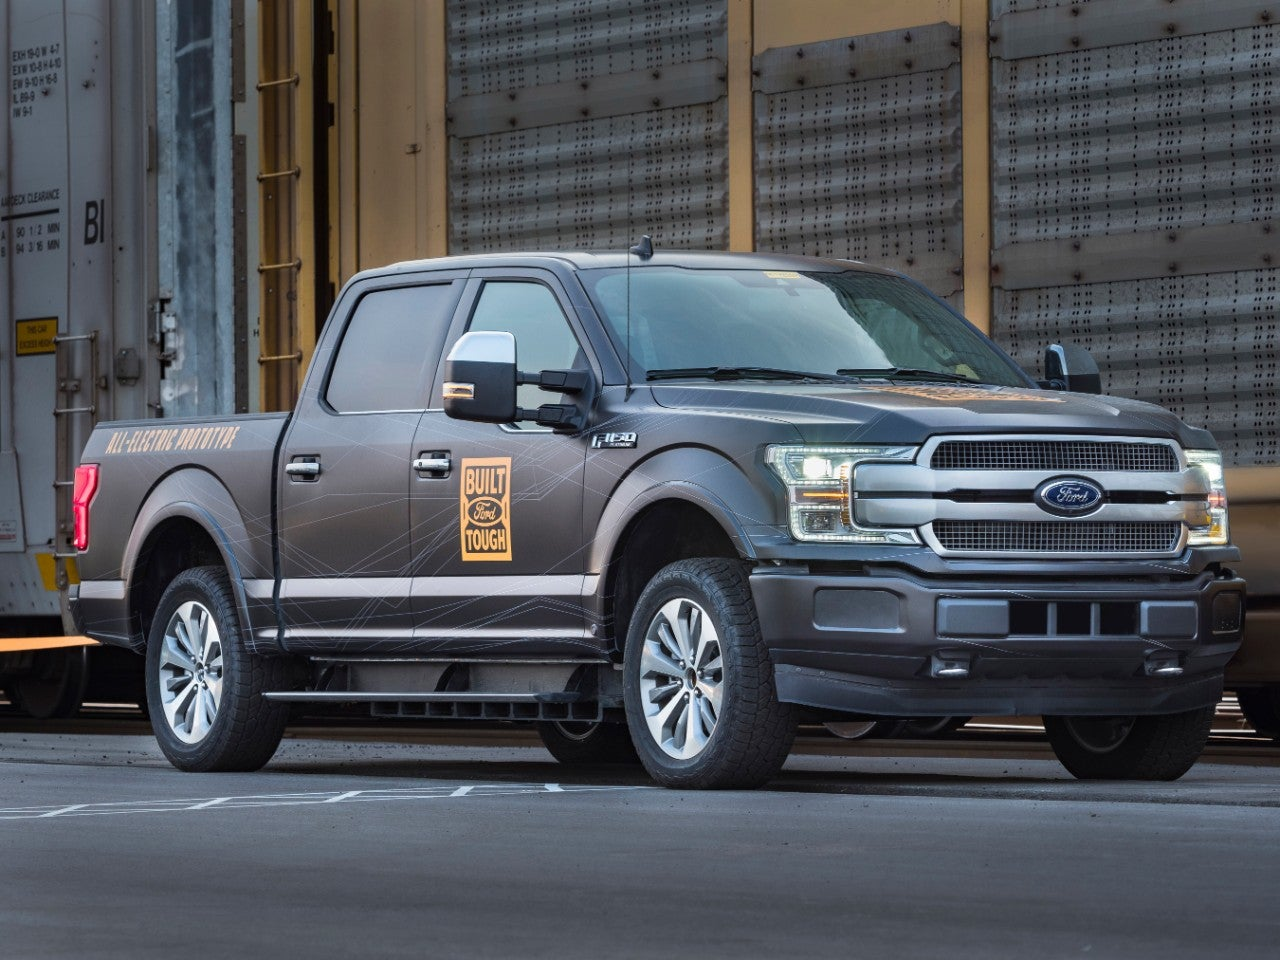 Why Is Everyone Talking About Ford Stock?